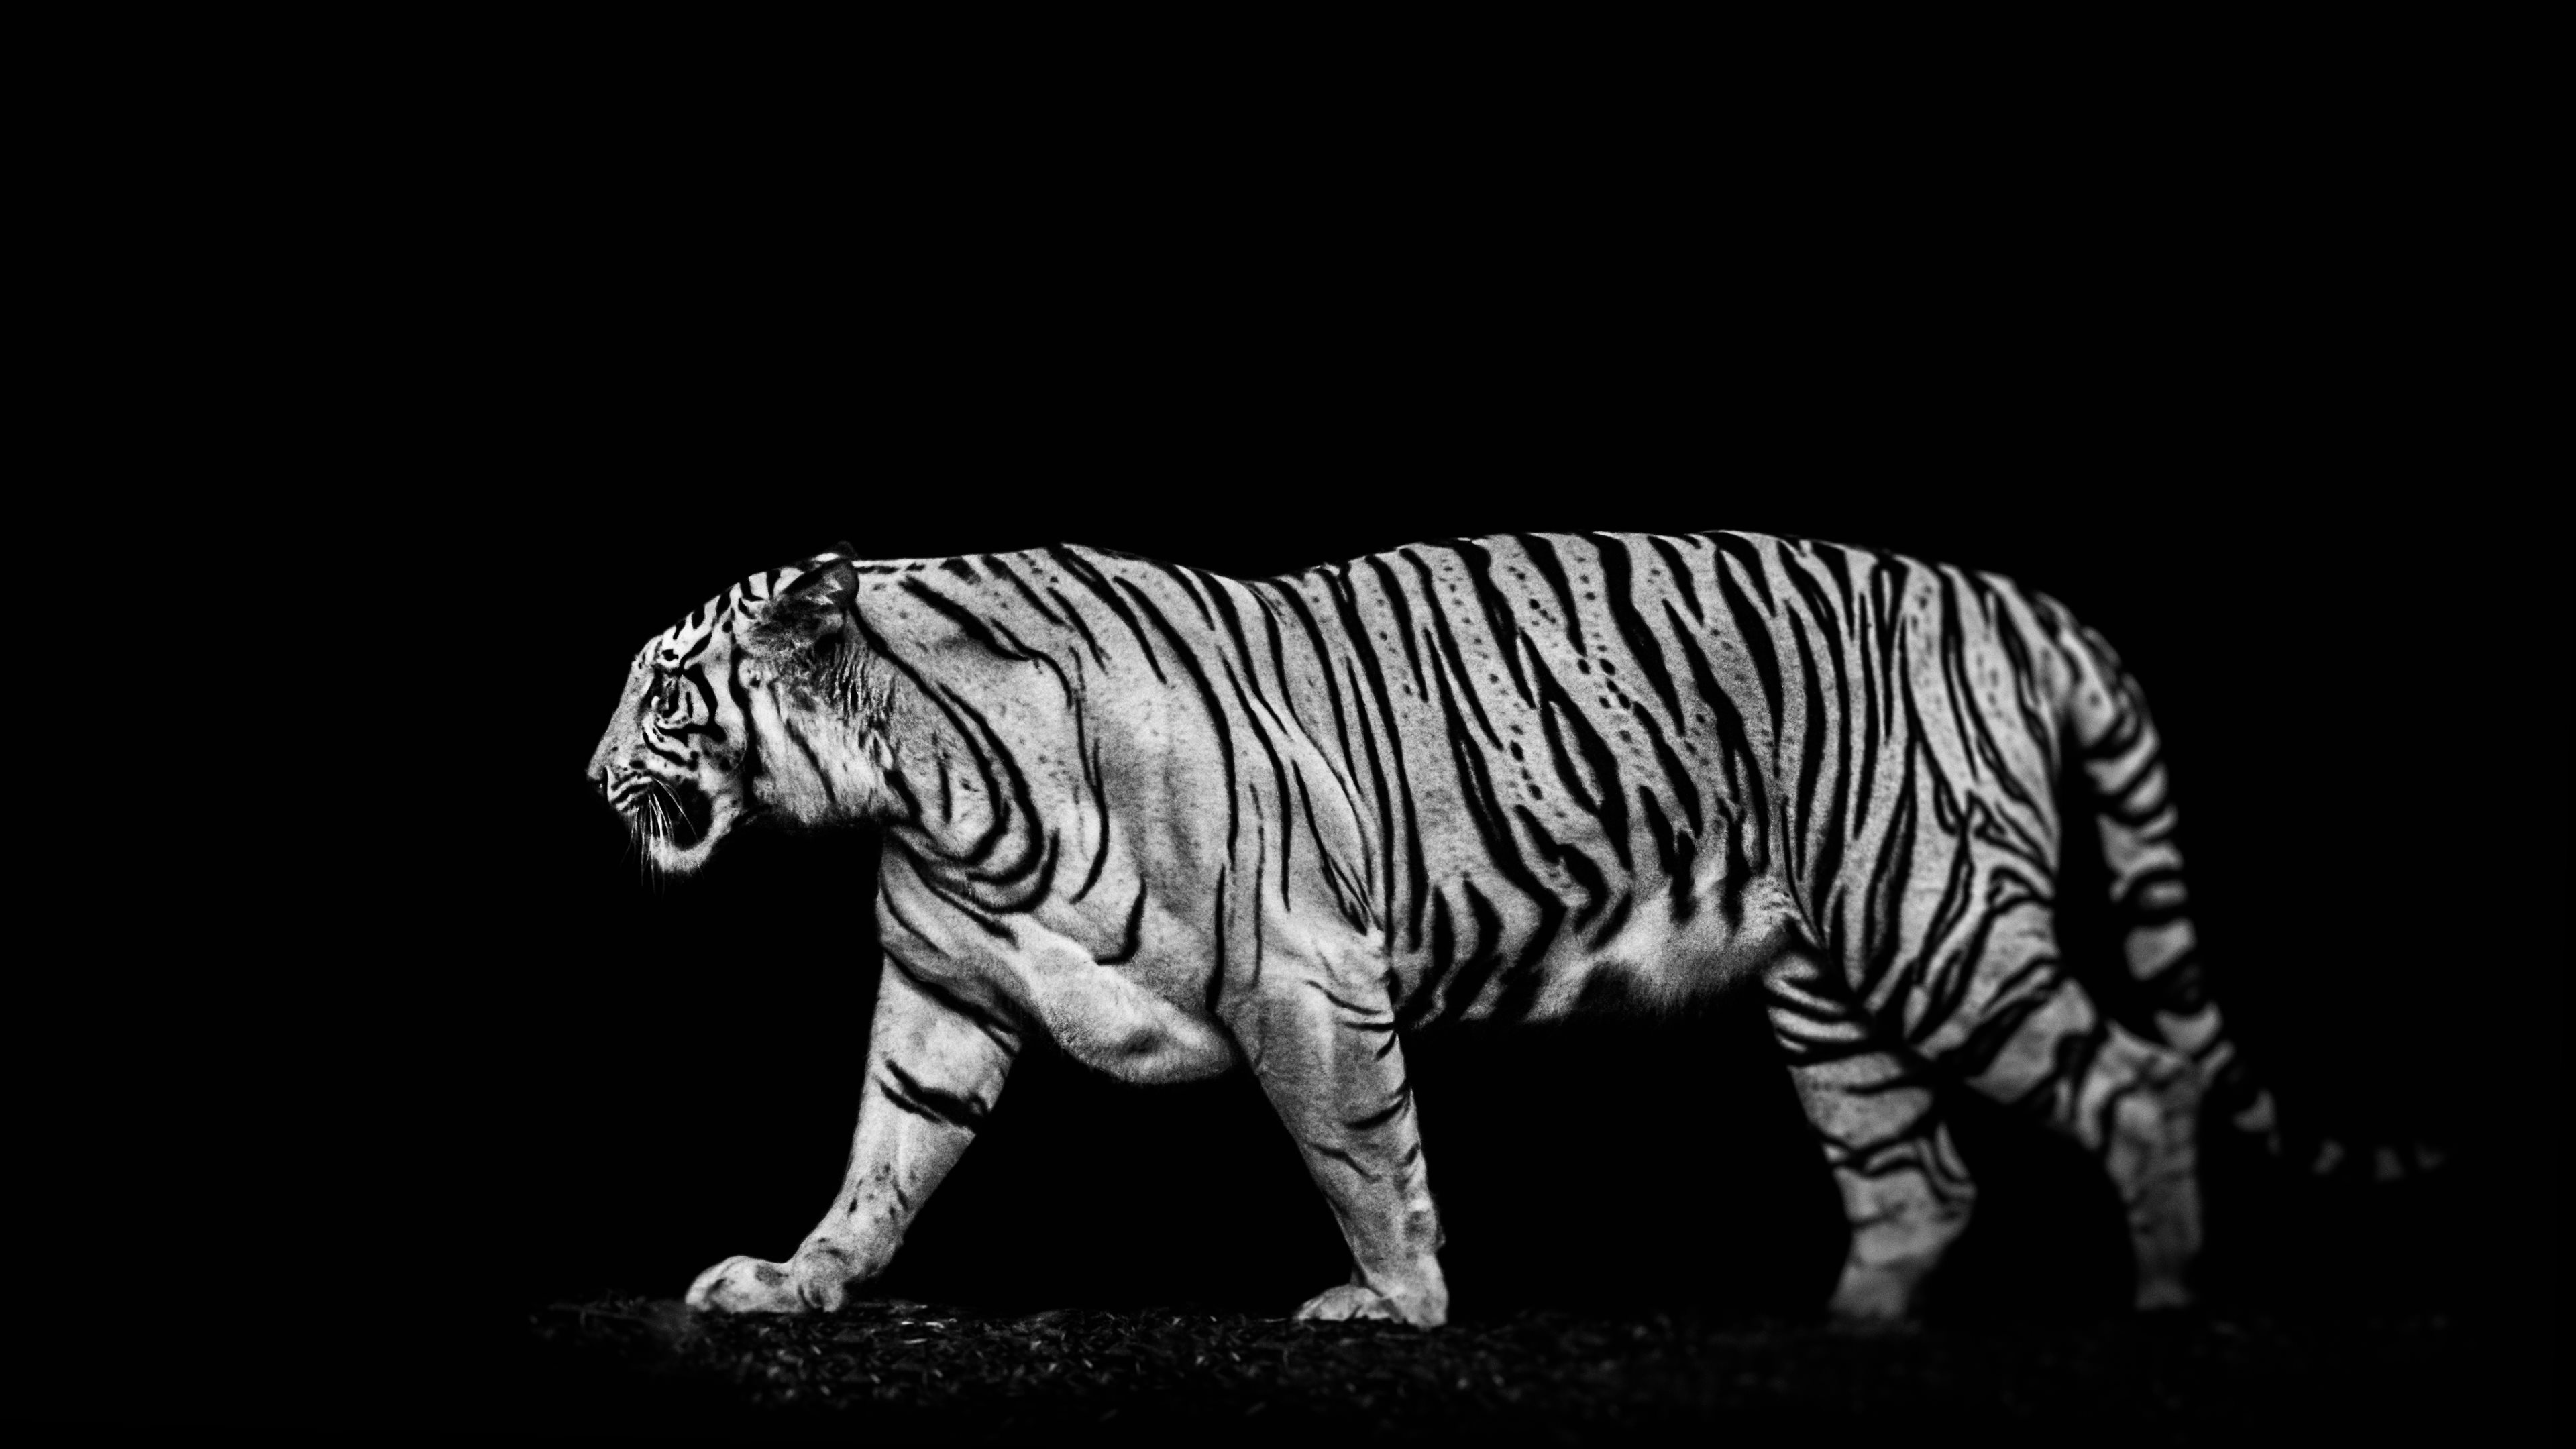 Tiger out of the dark HD